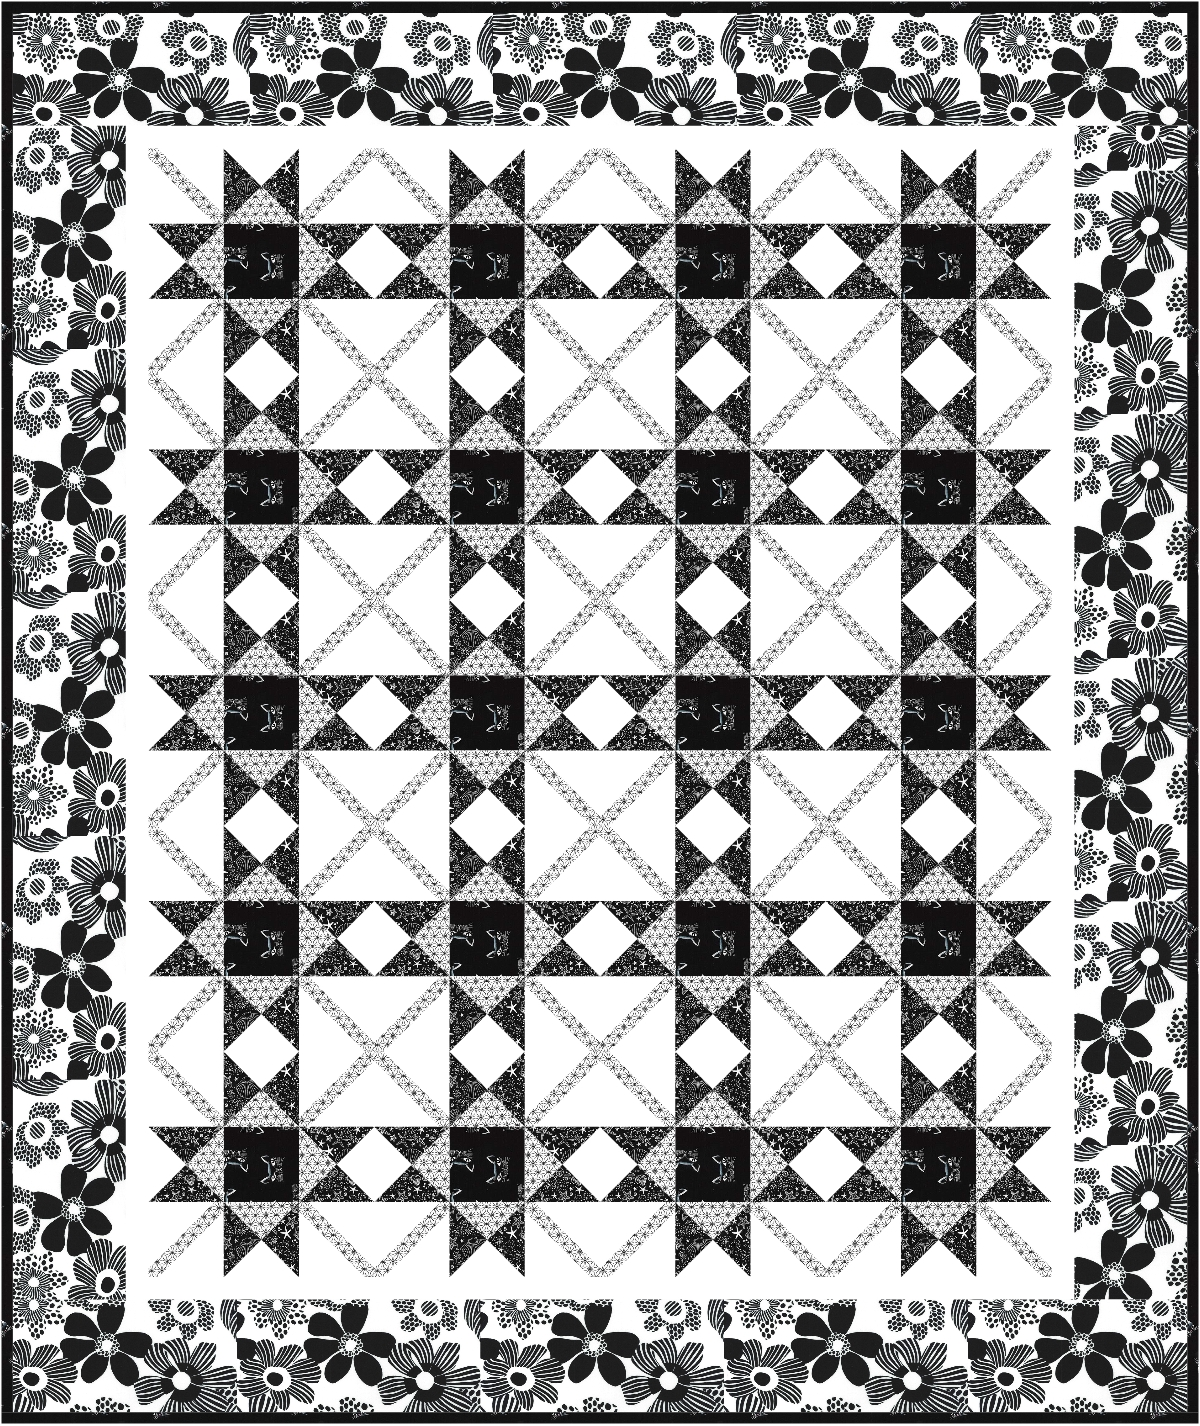 quilt quilted aztec and salvada white share cotton htm charcoal black design amp